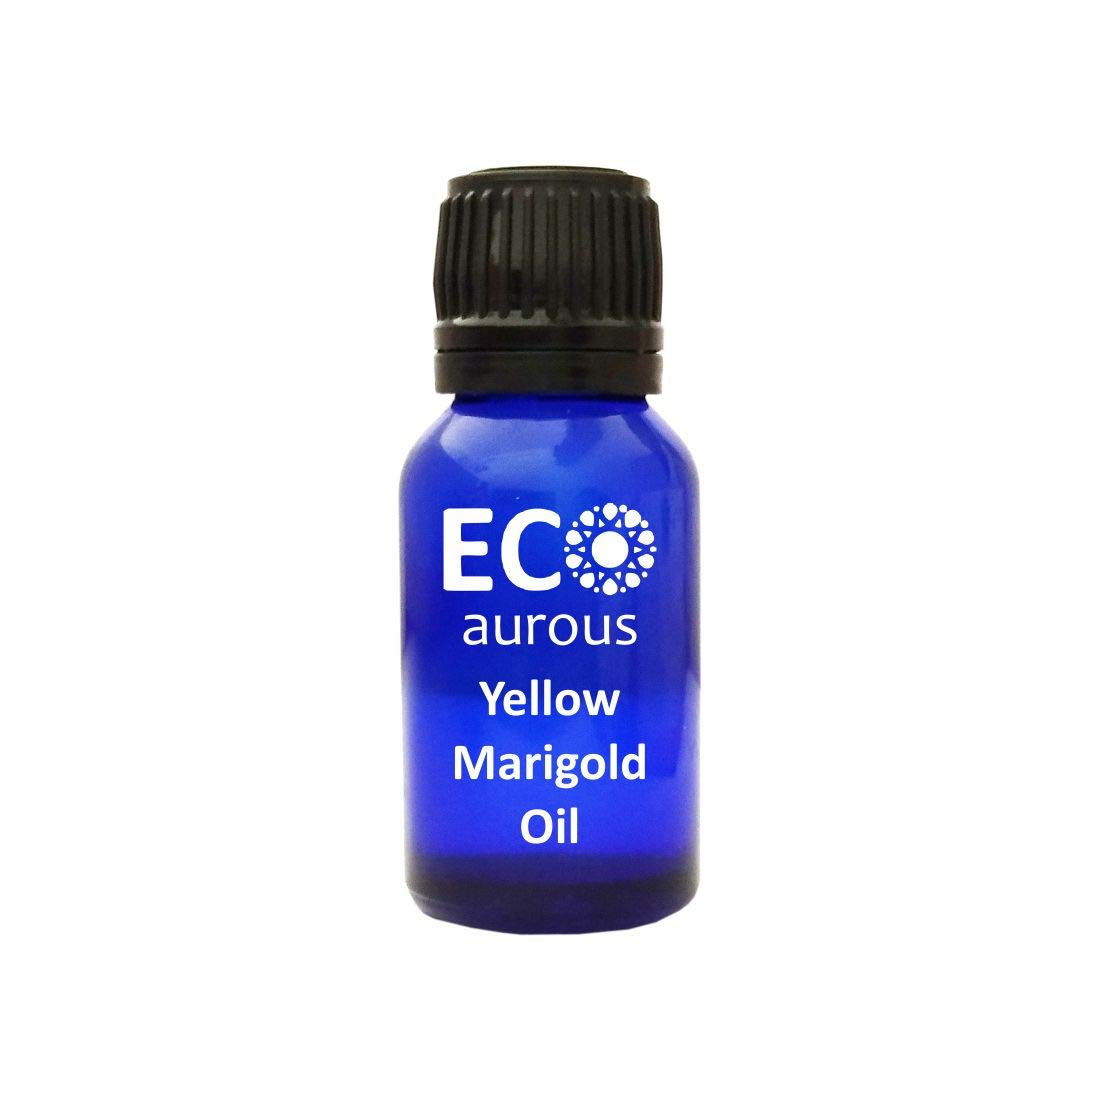 Yellow Marigold Oil 100% Natural, Organic, Vegan & Cruelty Free Essential Oil With Euro Dropper by Eco Aurous (2000 ml)